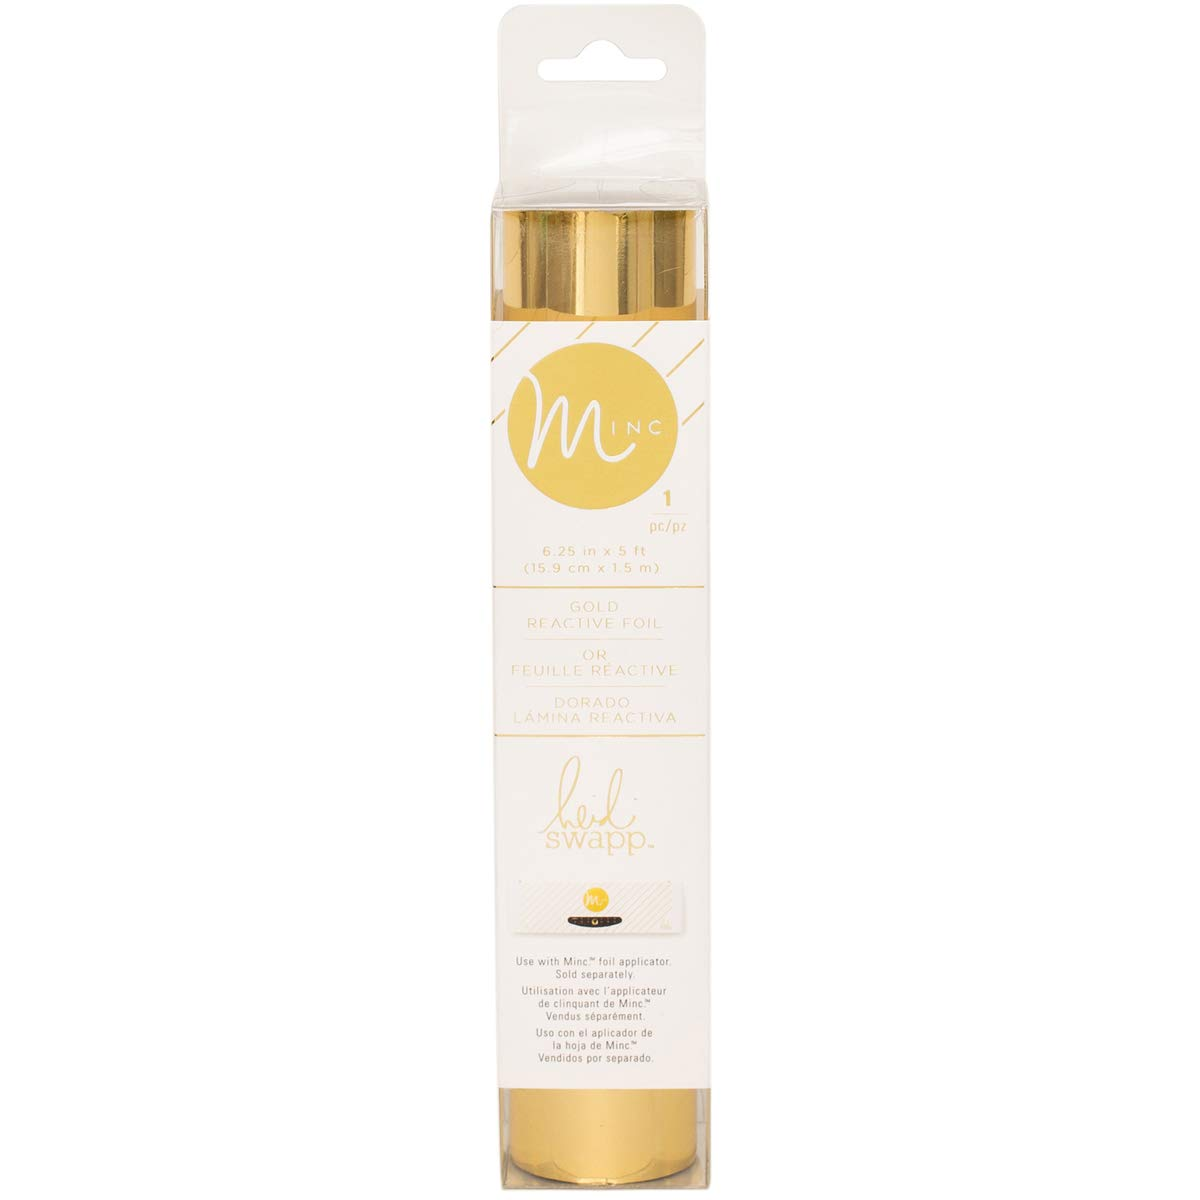 MINC Collection Reactive Foil 6 Inch Gold (8 Pack)